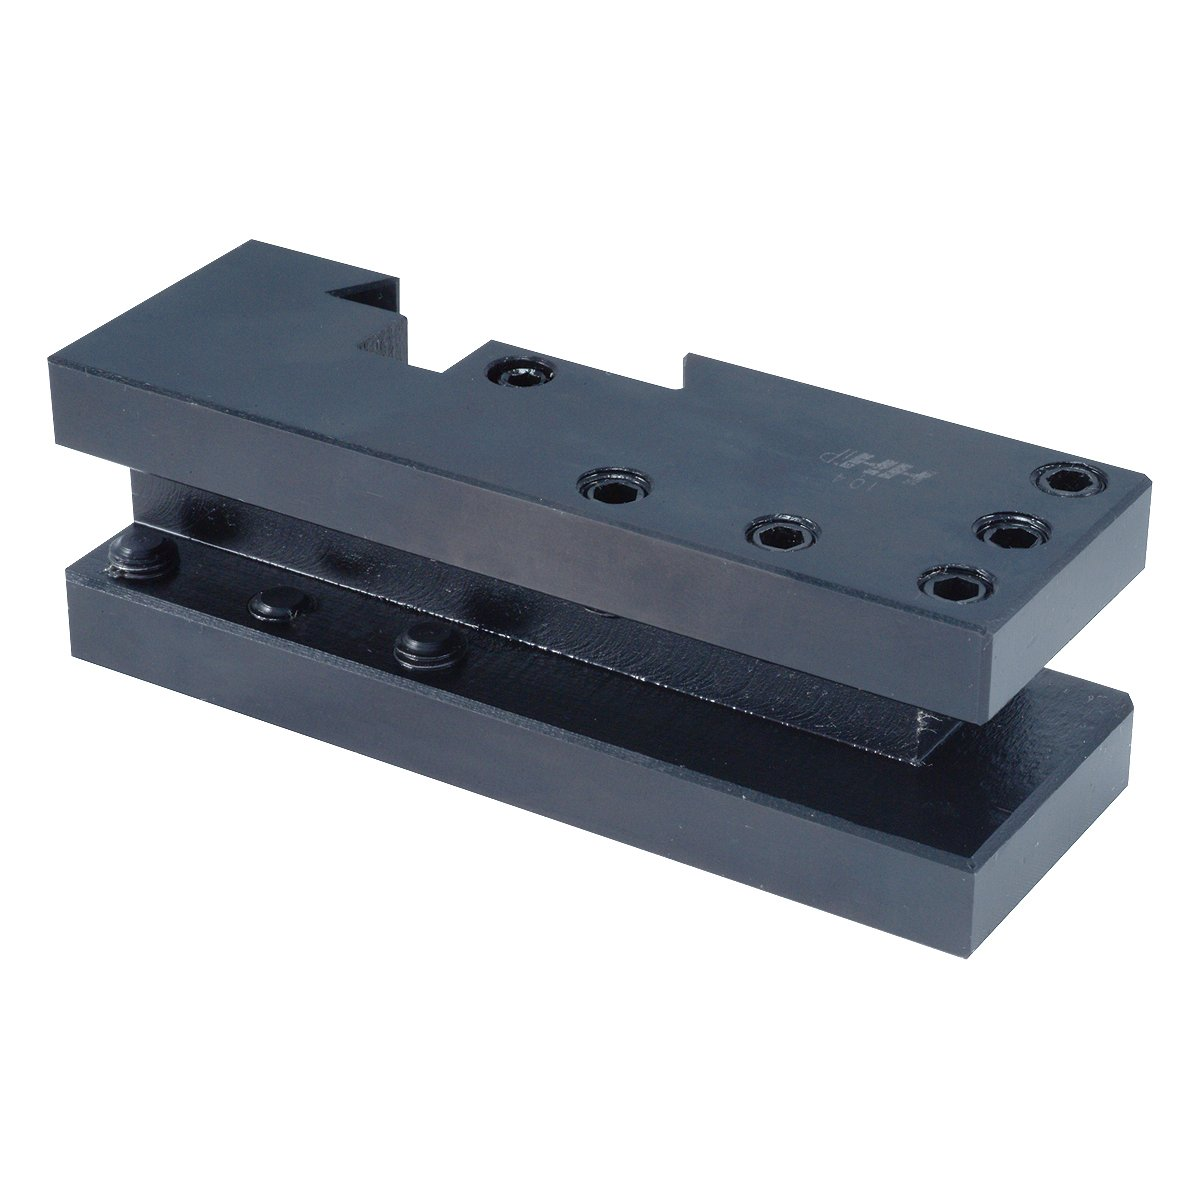 HHIP 3900 5412 KDK 102 Type Threading and Facing Bar Holder